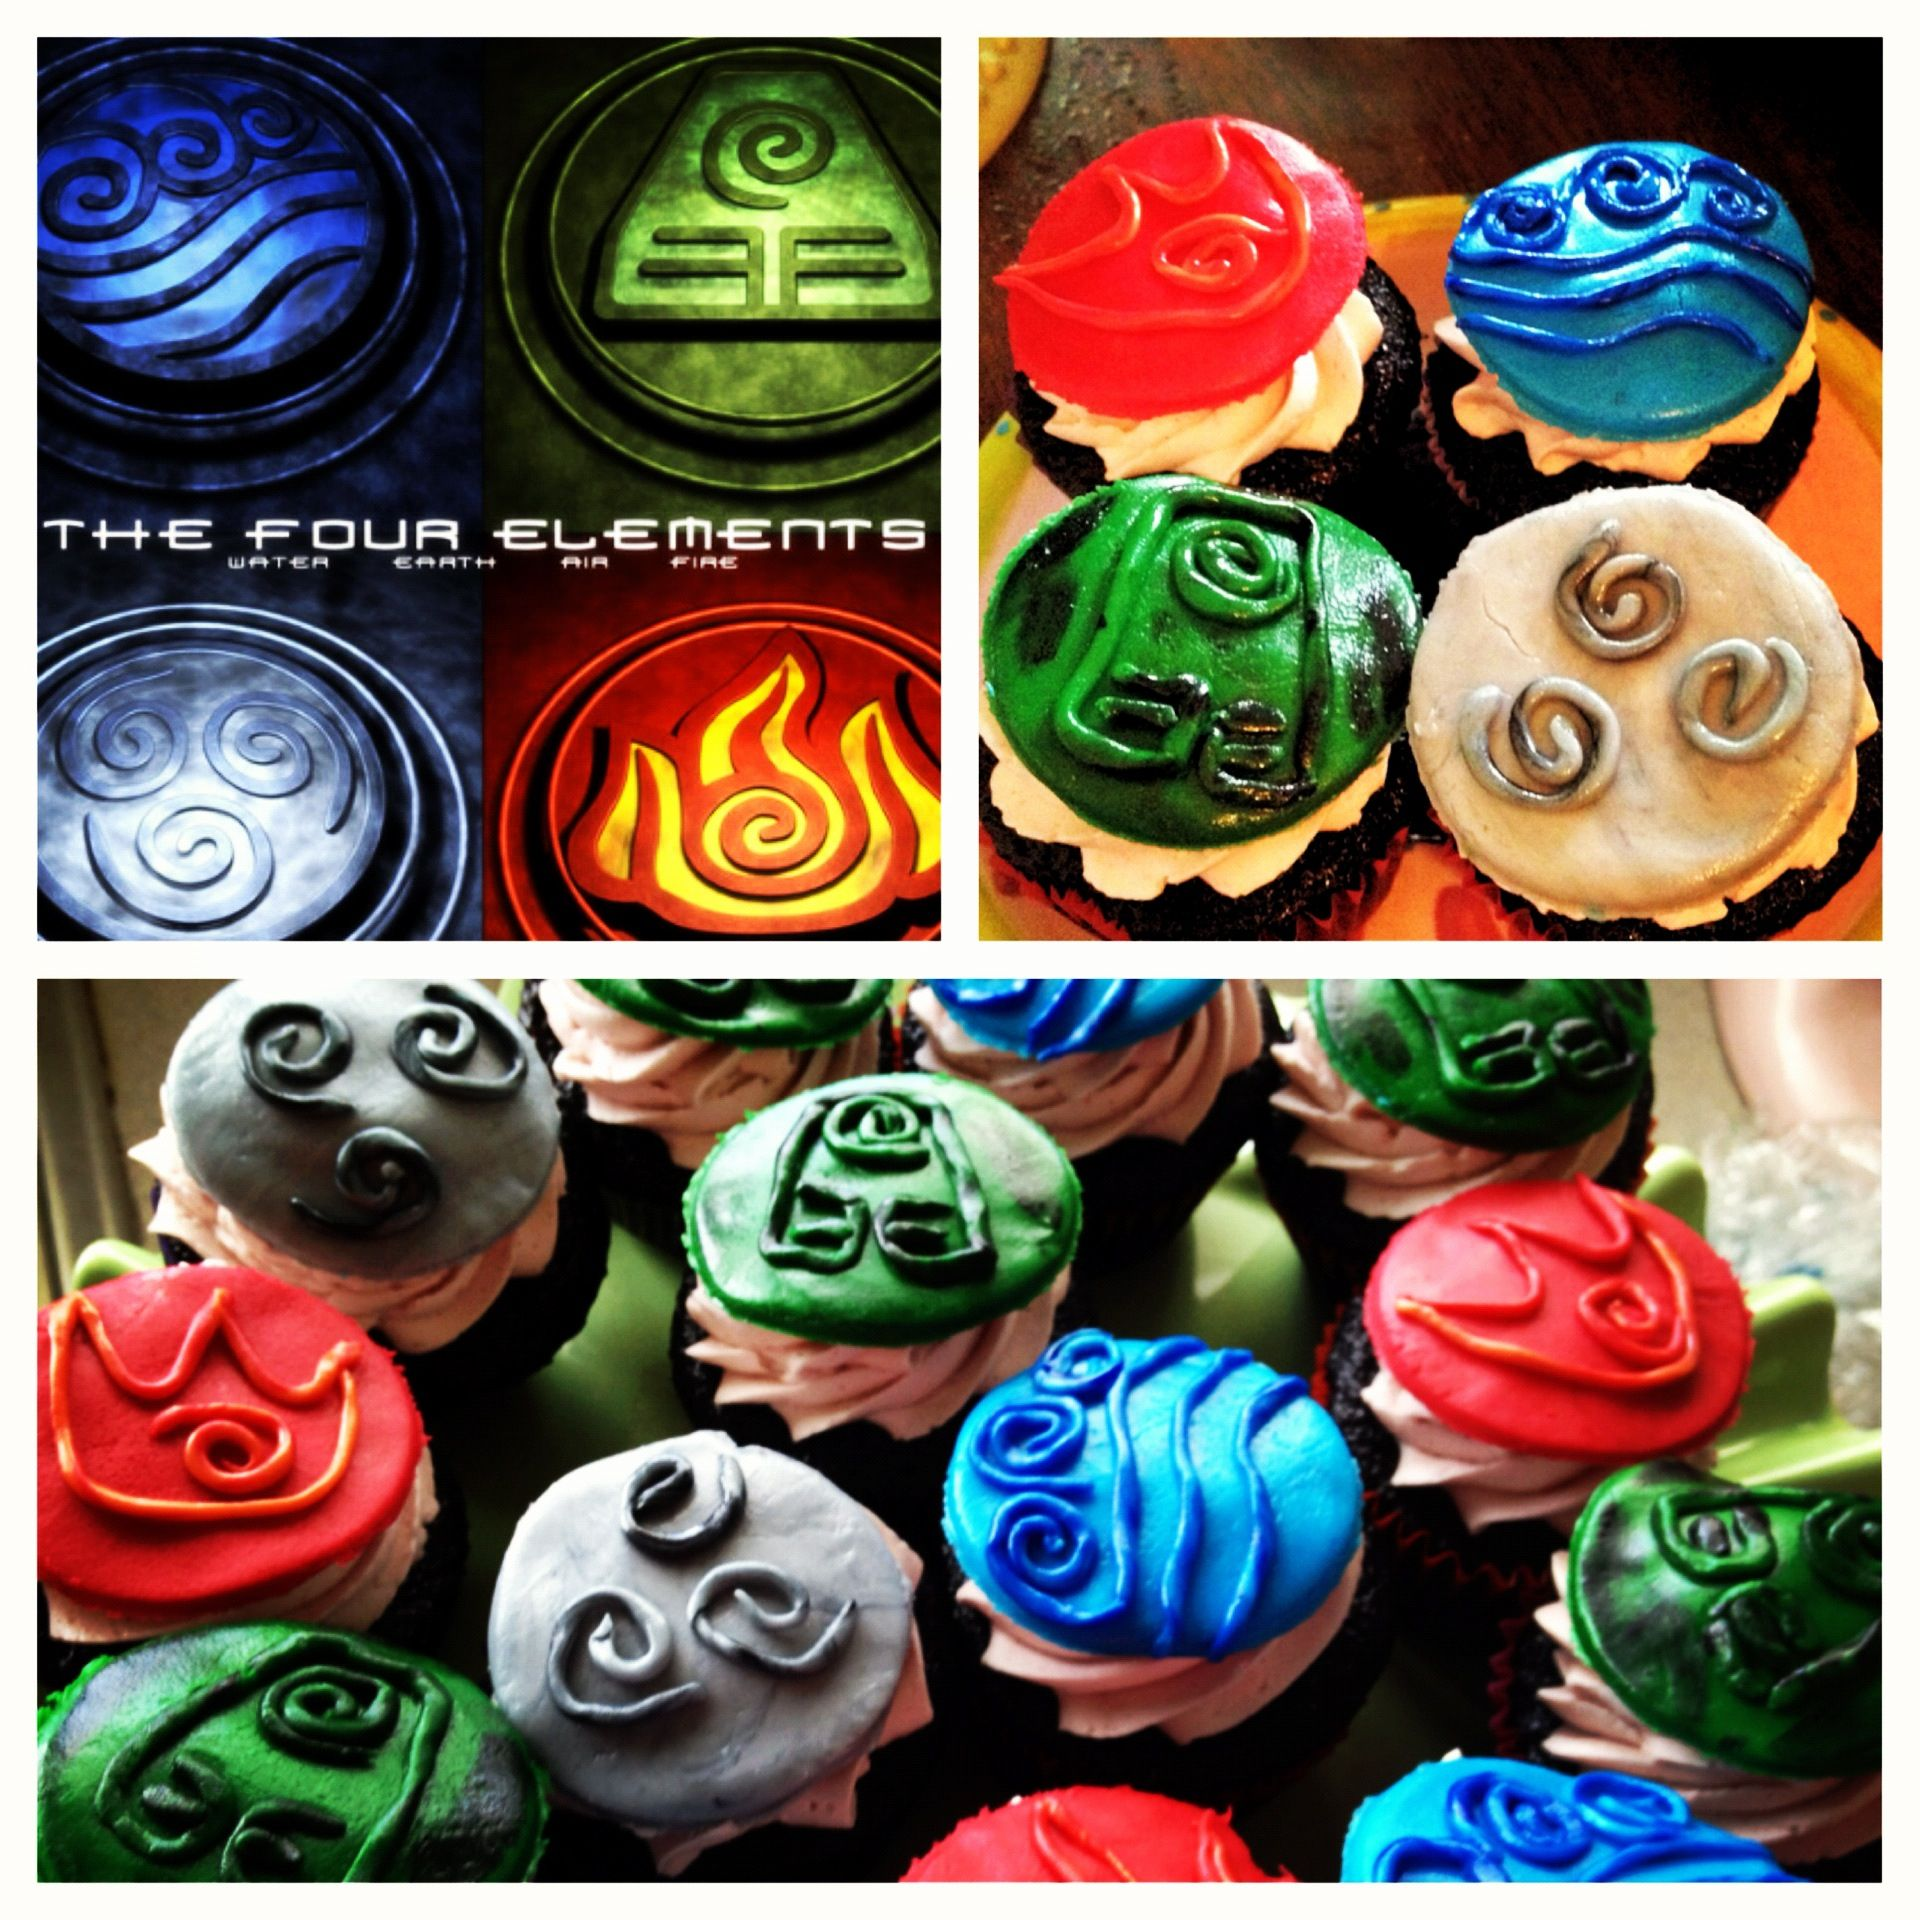 Avatar- The Last Airbender Cupcakes I Made! Top Left Was